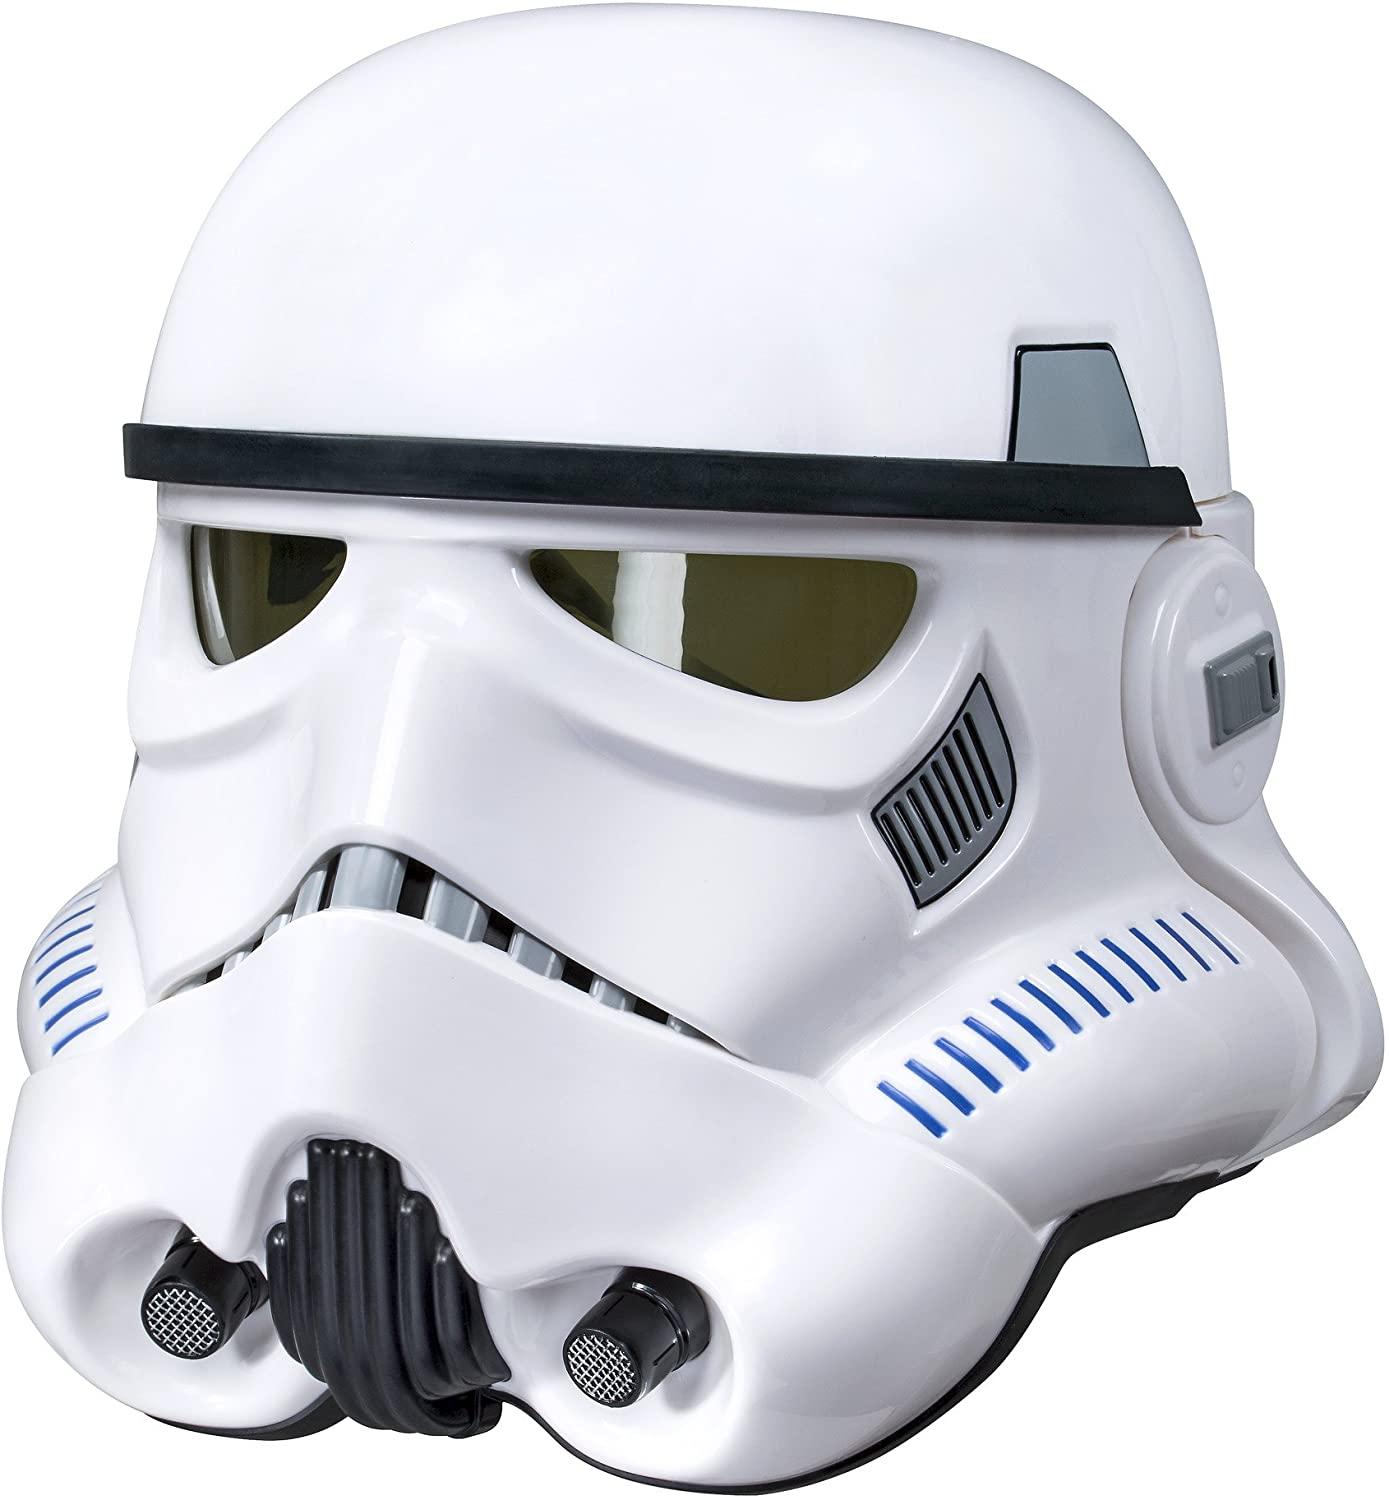 REPLICA CASCO per le ultime 1984 17 Luke Skywalker Imperial Stormtrooper